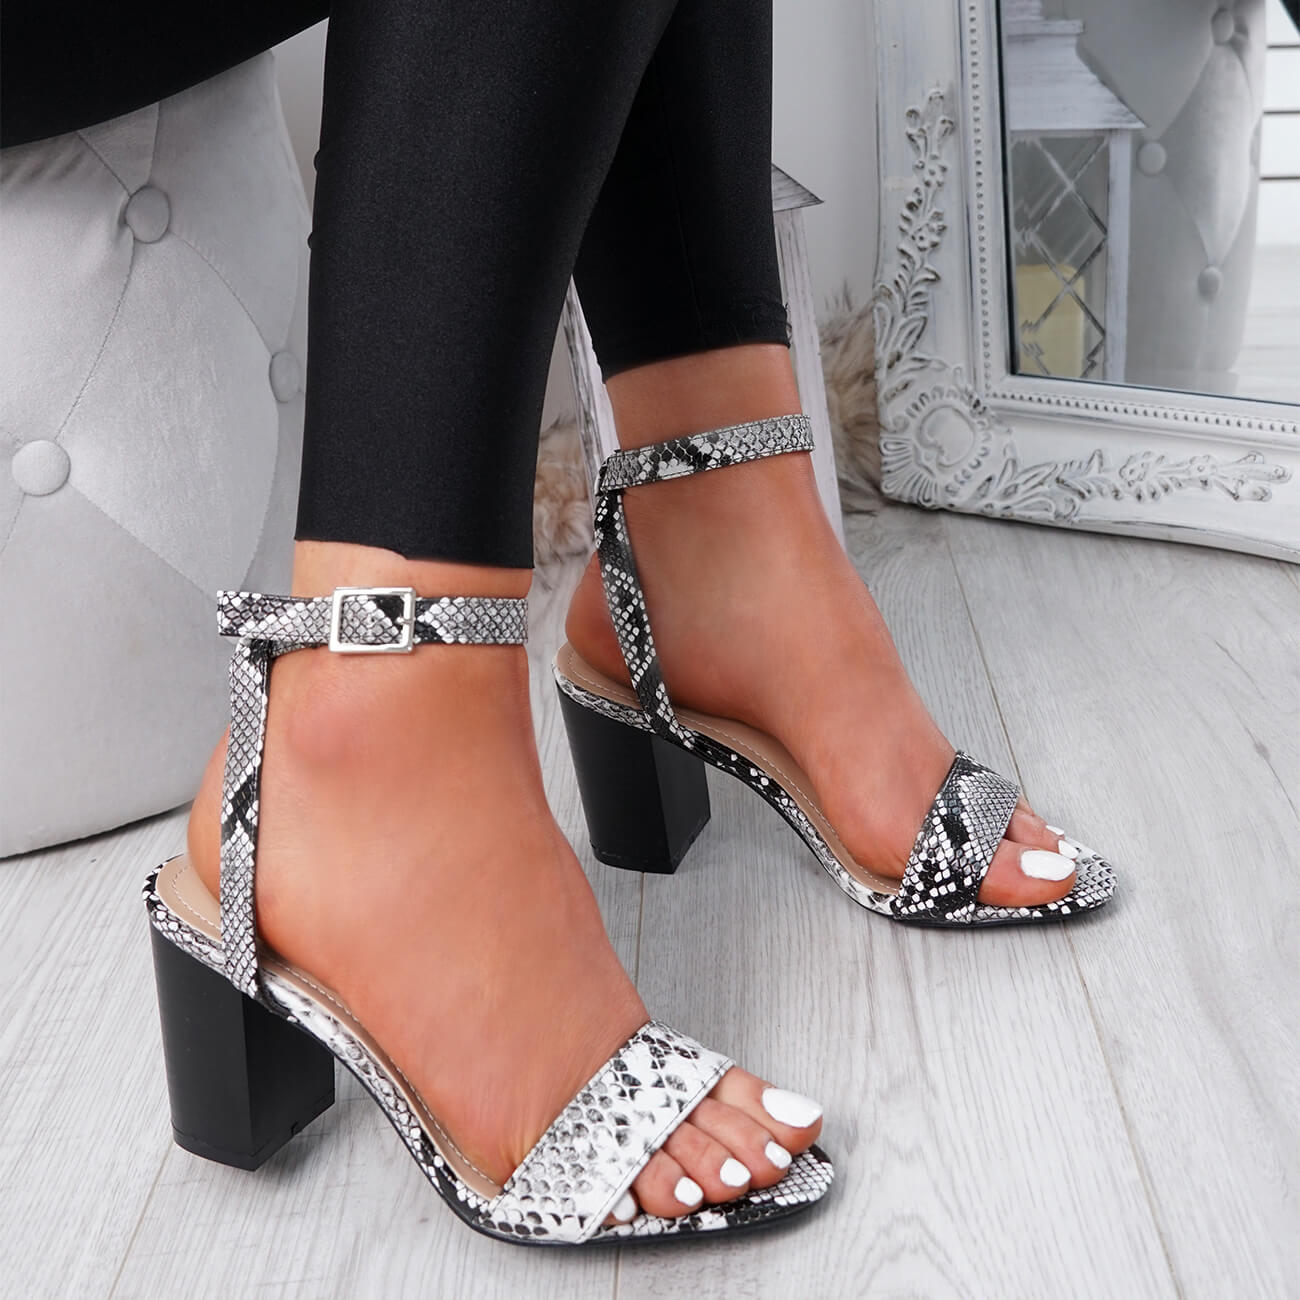 WOMENS-LADIES-PEEP-TOE-HIGH-BLOCK-HEEL-SANDALS-ANKLE-STRAP-PARTY-SHOES-SIZE thumbnail 15